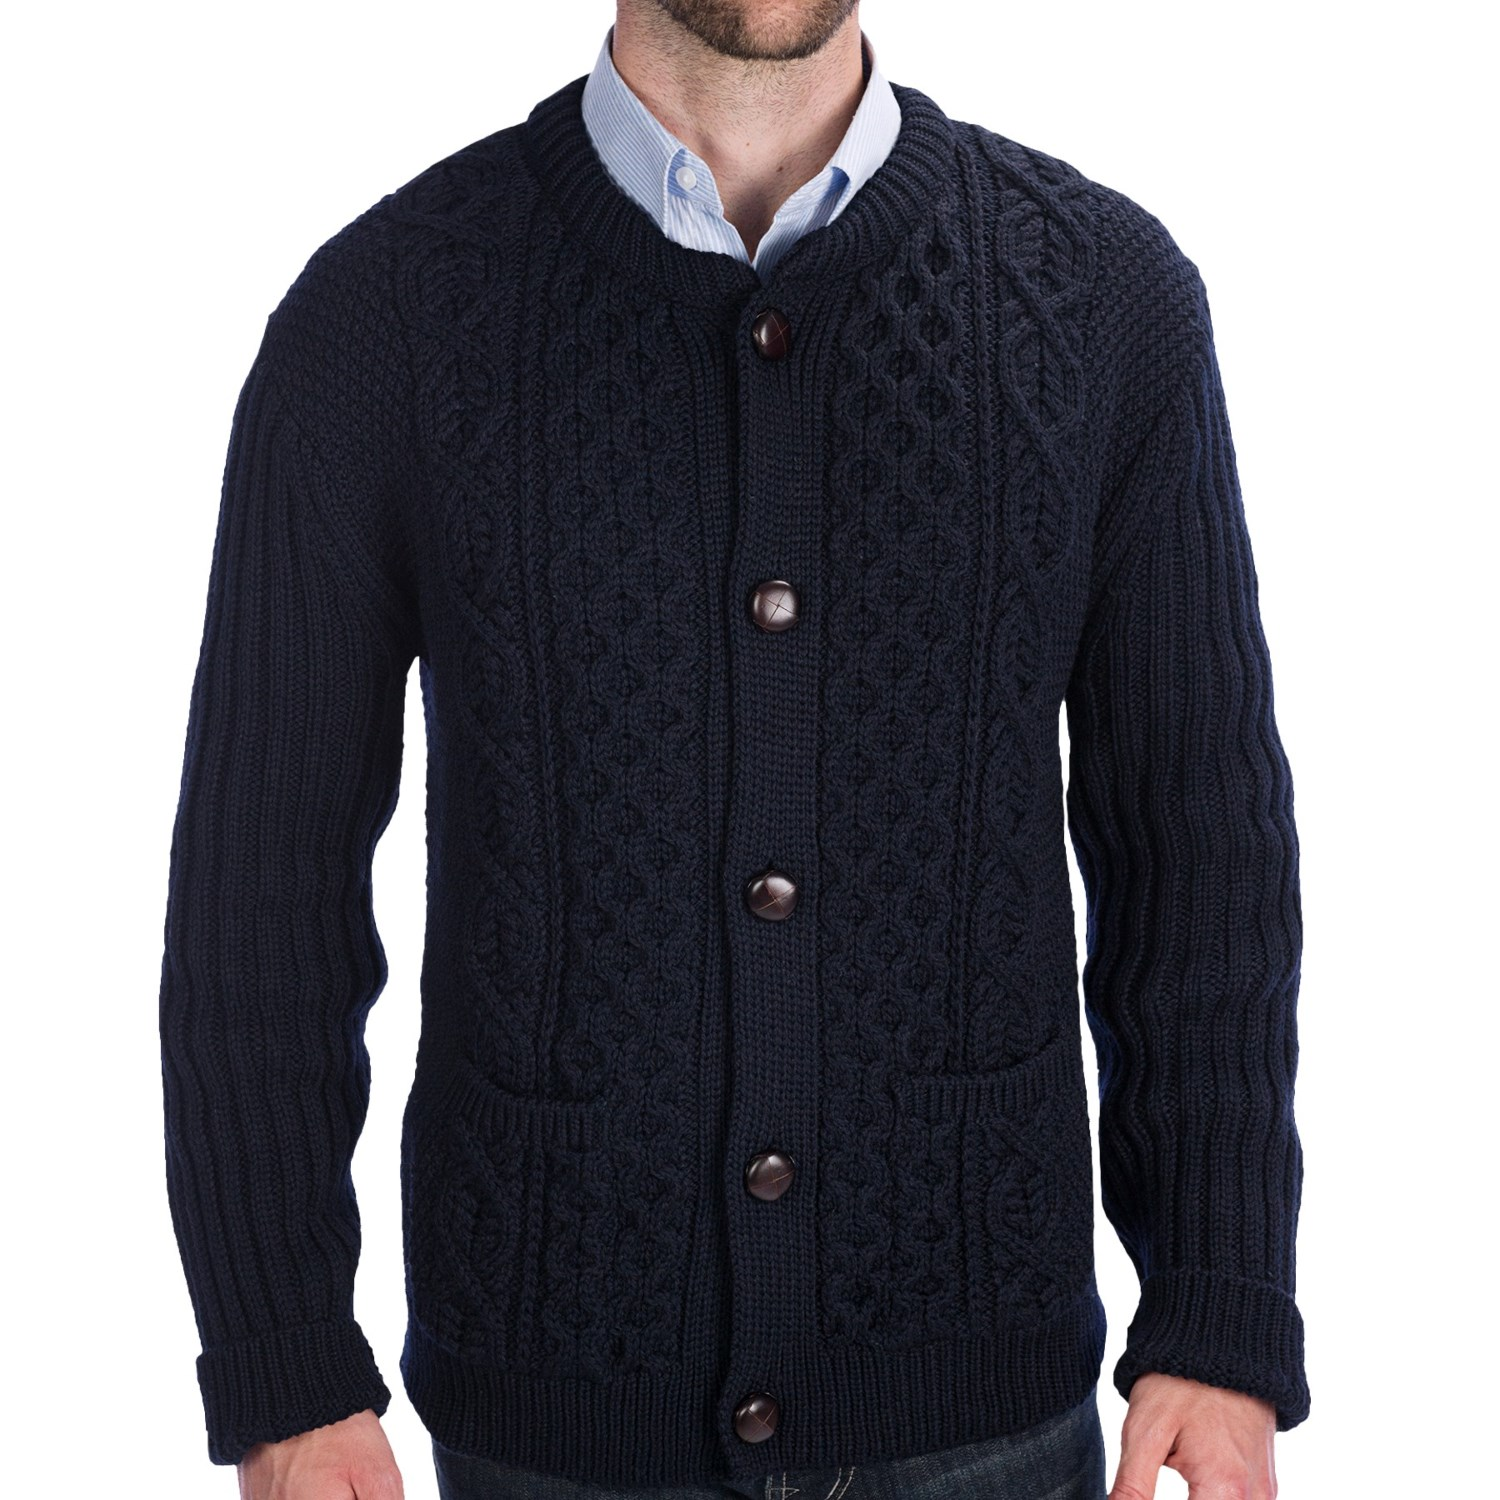 Men Cardigan Sweater 29